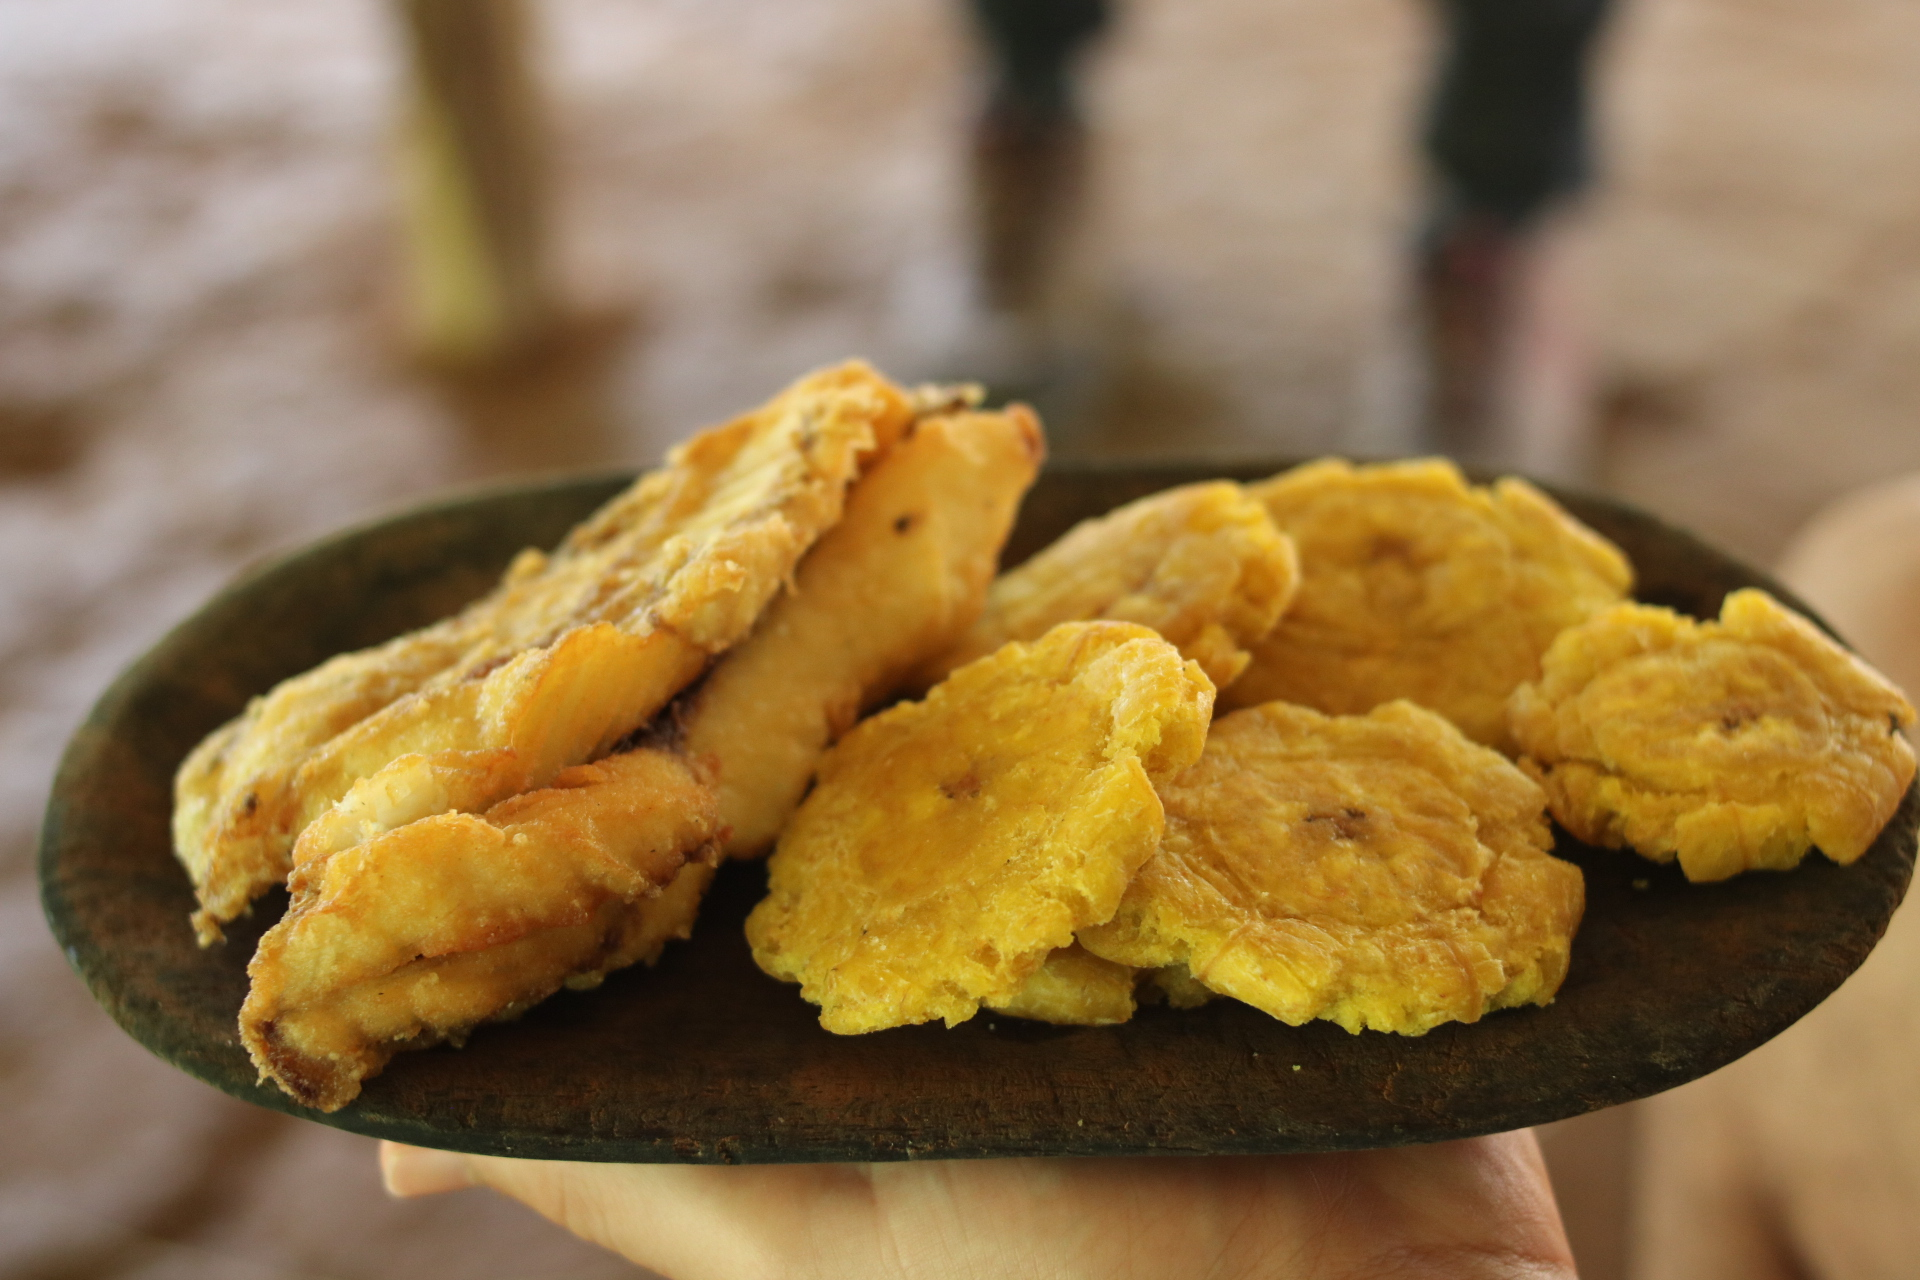 Fried Plantains and tilapia from the embera tribe in Panama